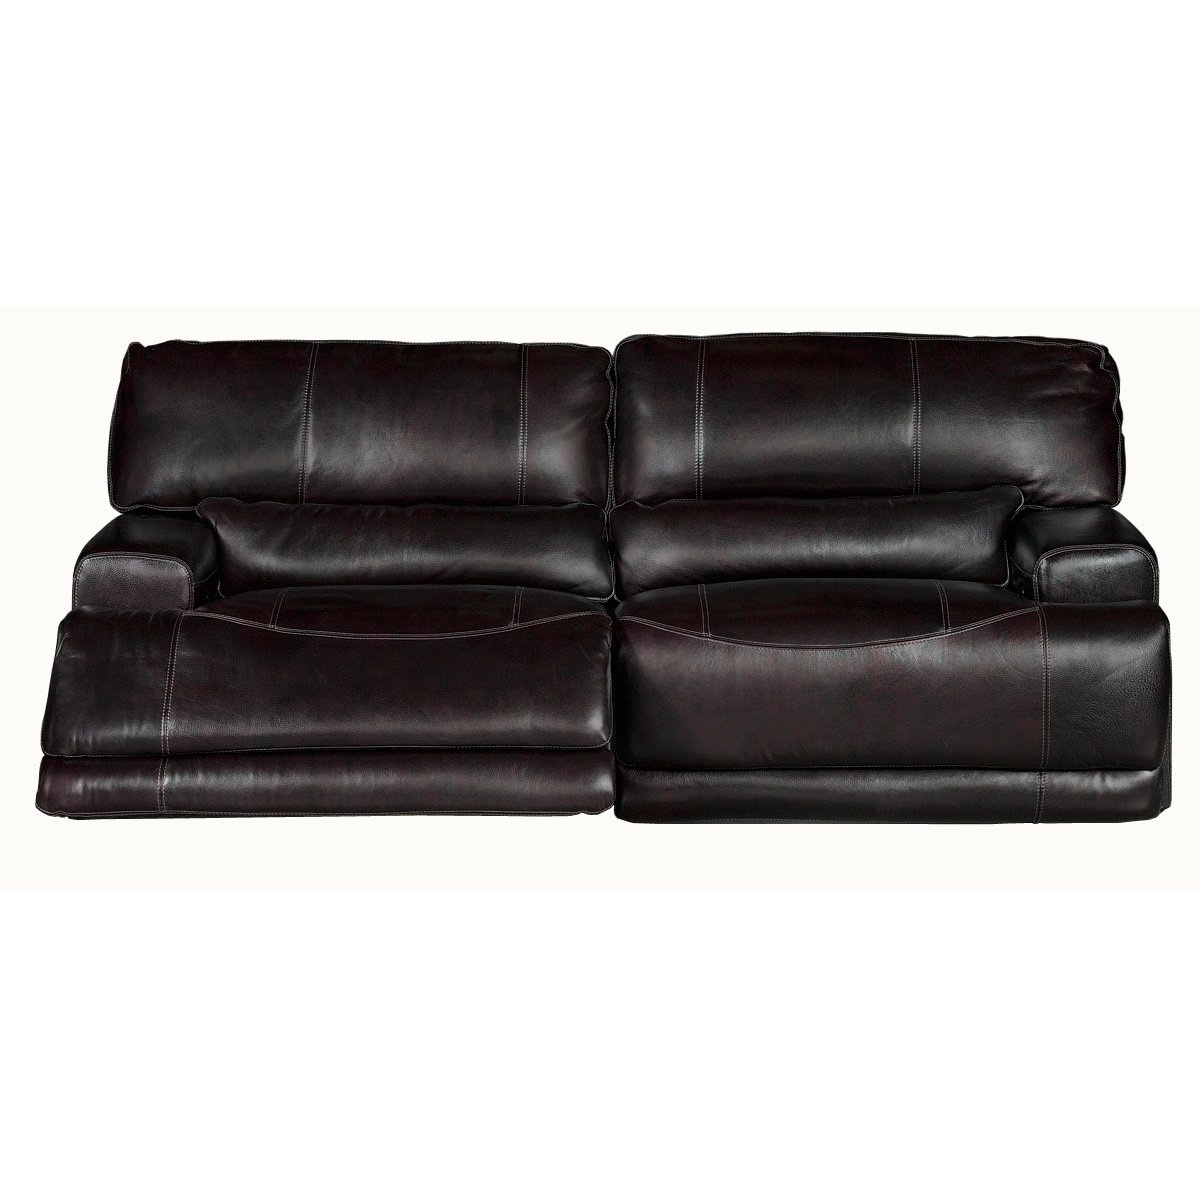 Blackberry Leather Match Reclining Sofa Stampede